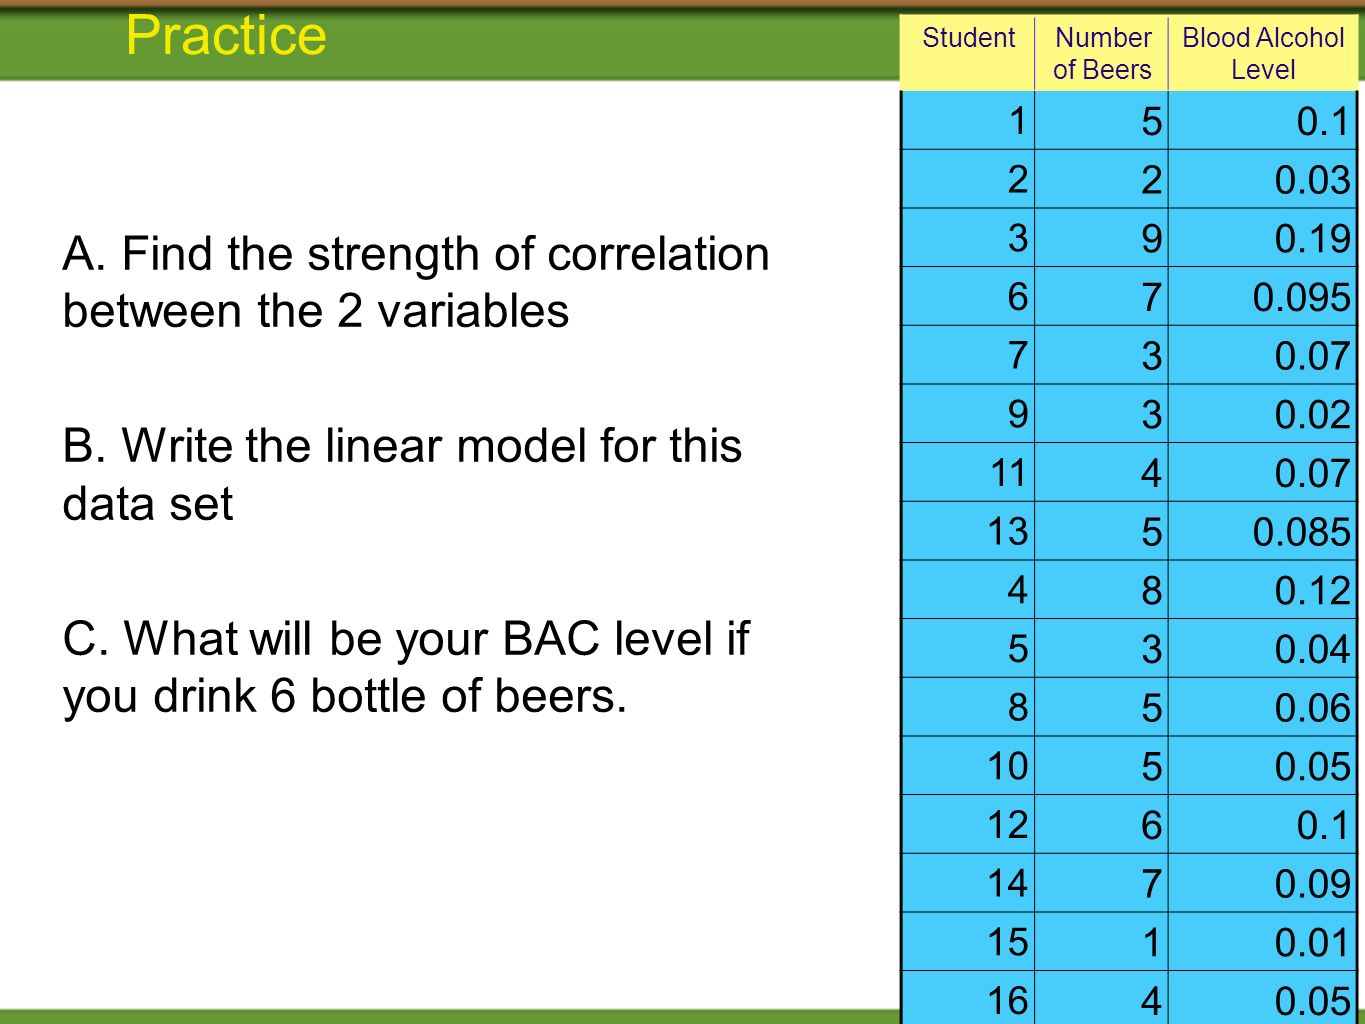 Practice A. Find the strength of correlation between the 2 variables